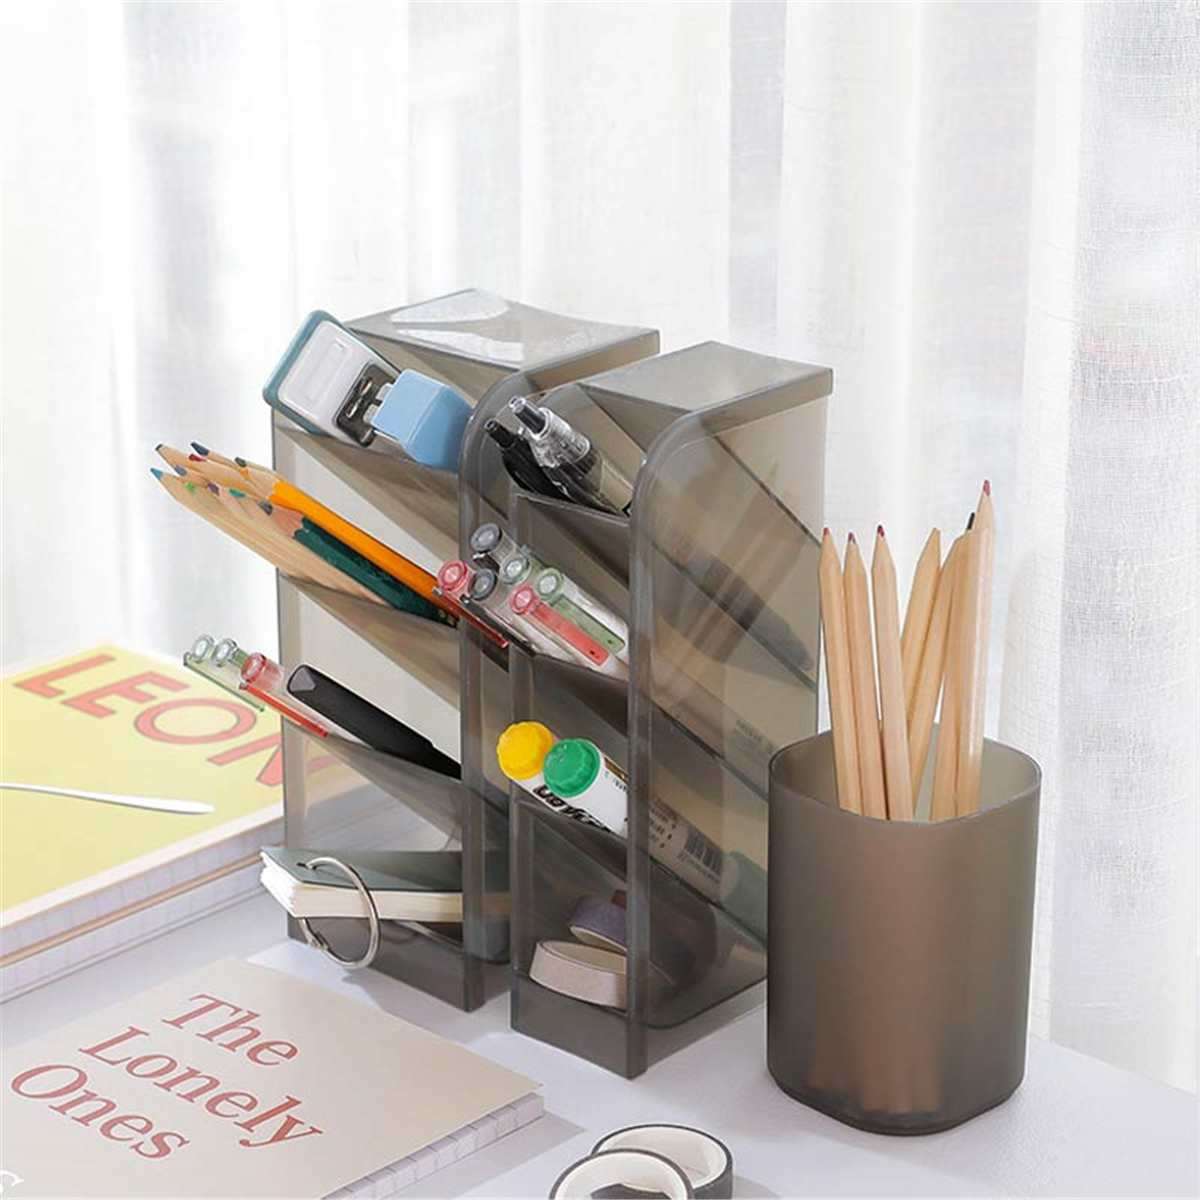 Home Storage Organizer Pencil Tube Home Office Supplies Pencil Cosmetic Pot Pen Holder Stationery Storage Rack Desktop Storage